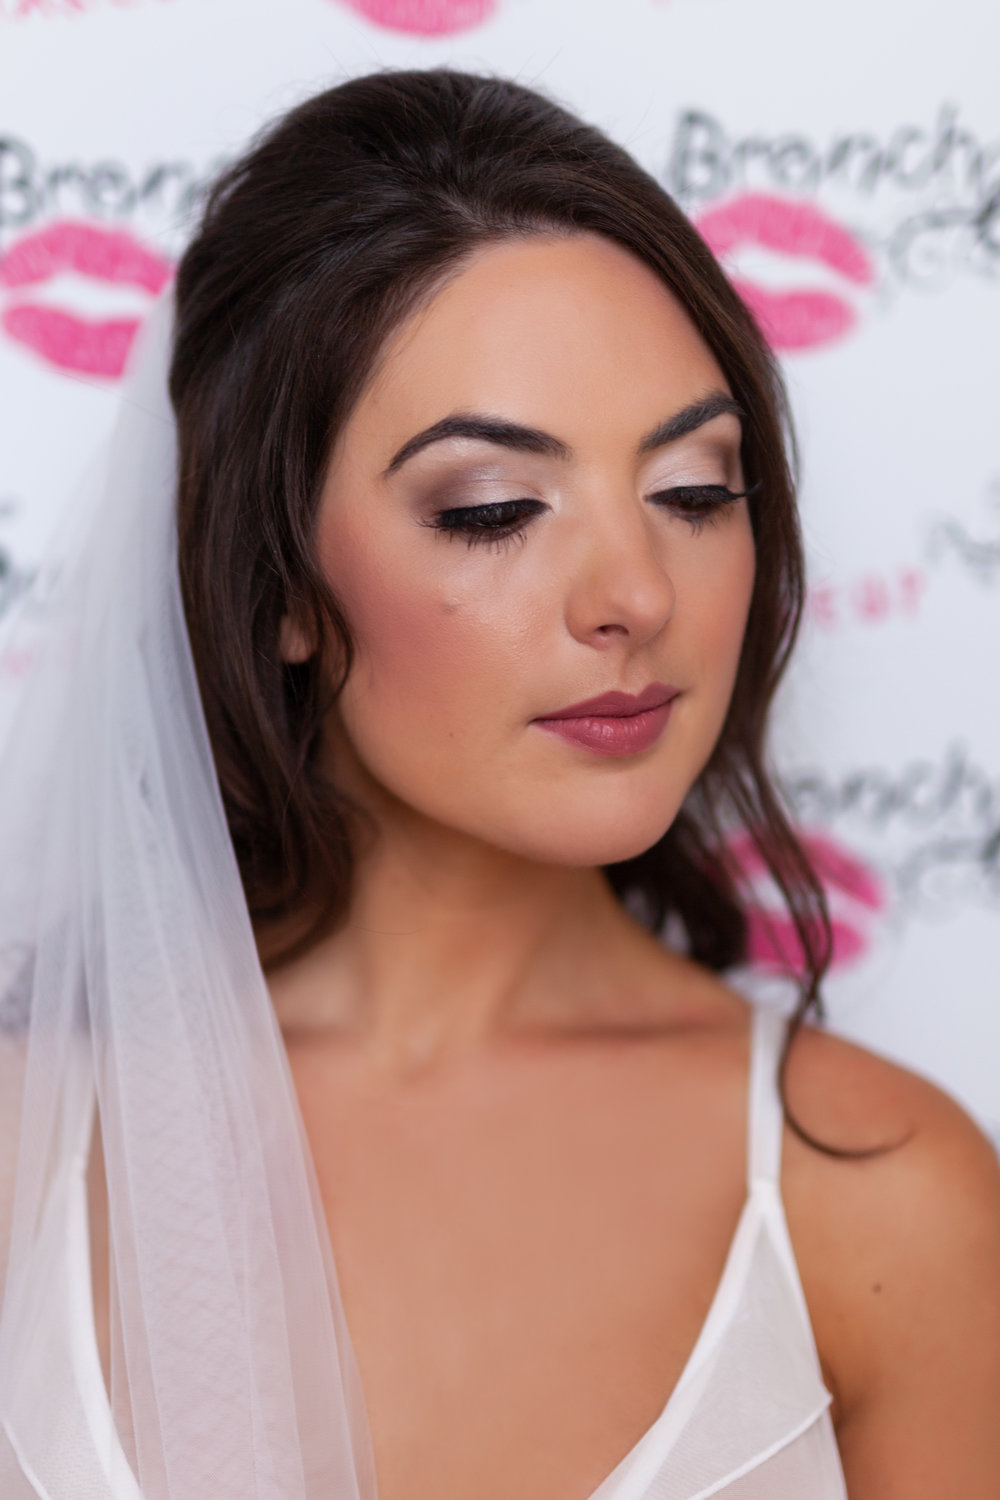 CLASSIC BRIDAL MAKEUP - Bride £80 (includes one trial & makeup on the day)Bridesmaid or Mother of the Bride/Groom £35 (on the day)Optional strip/false lashes (full or half) £5 per personAdditional trials £35 per person